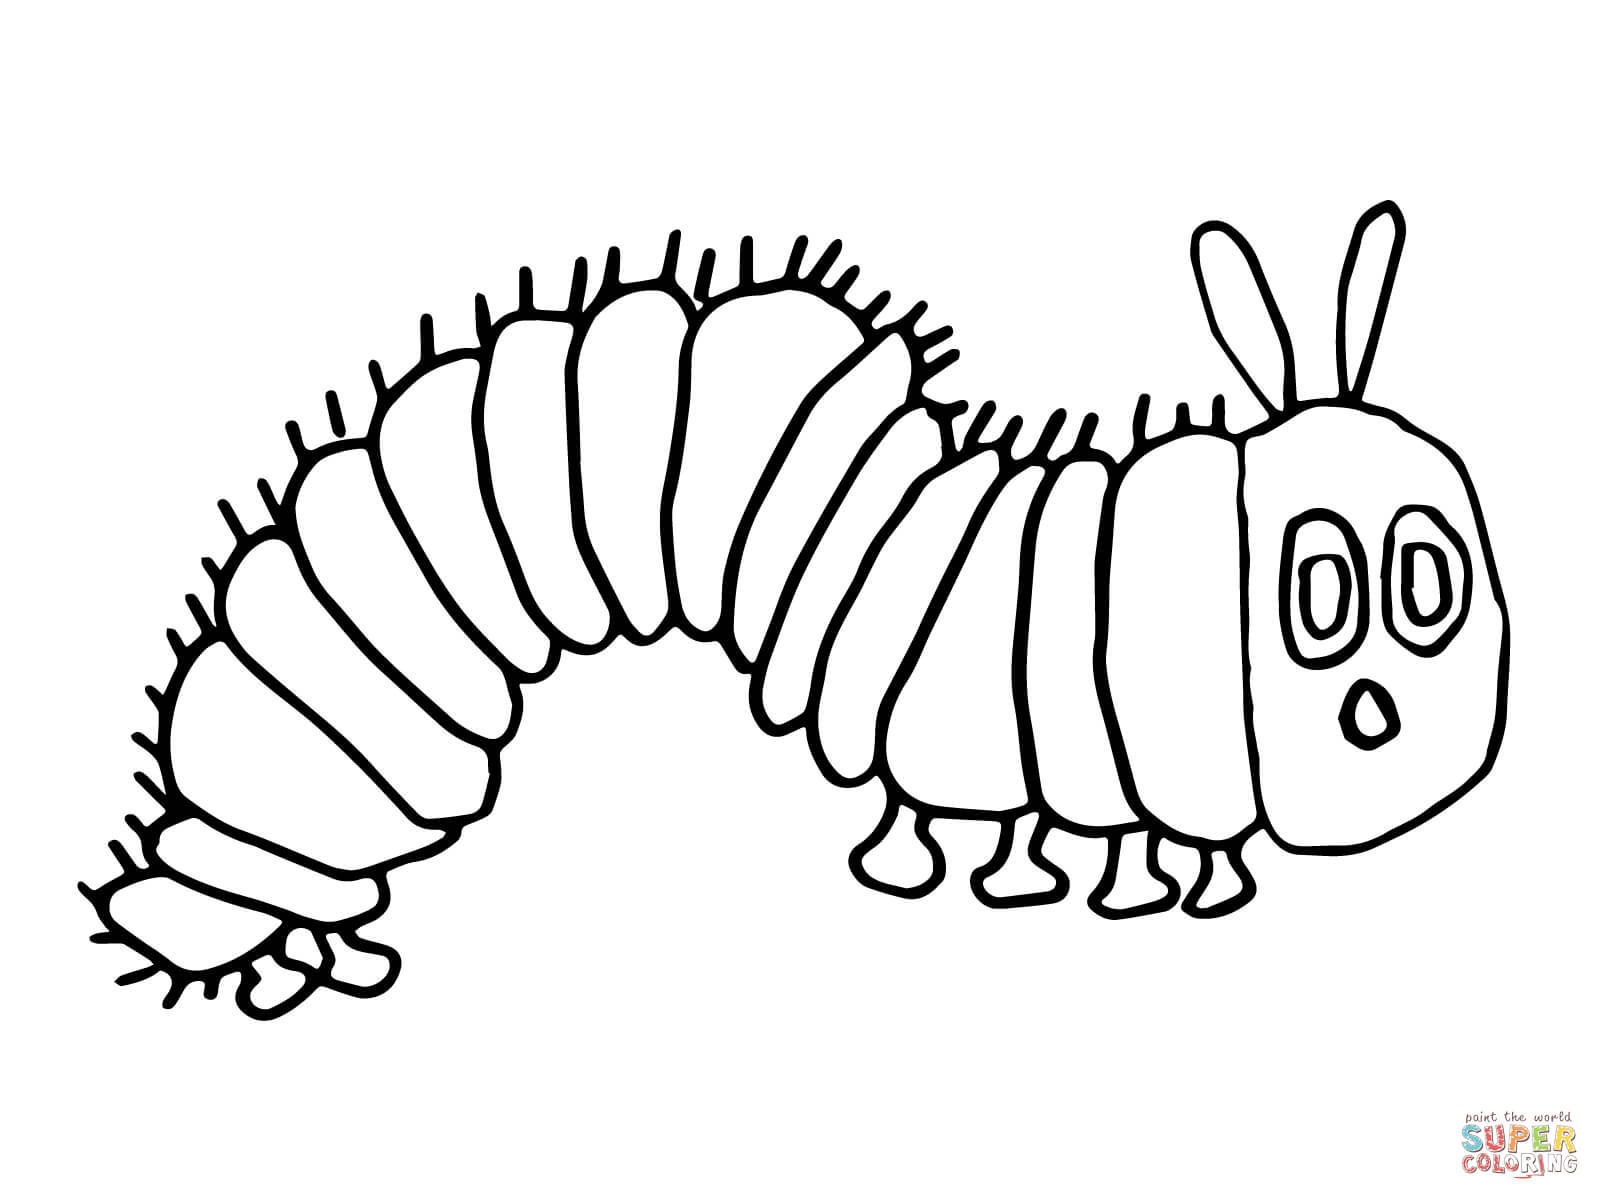 hungry caterpillar coloring sheets very hungry caterpillar coloring pages to download and caterpillar sheets hungry coloring